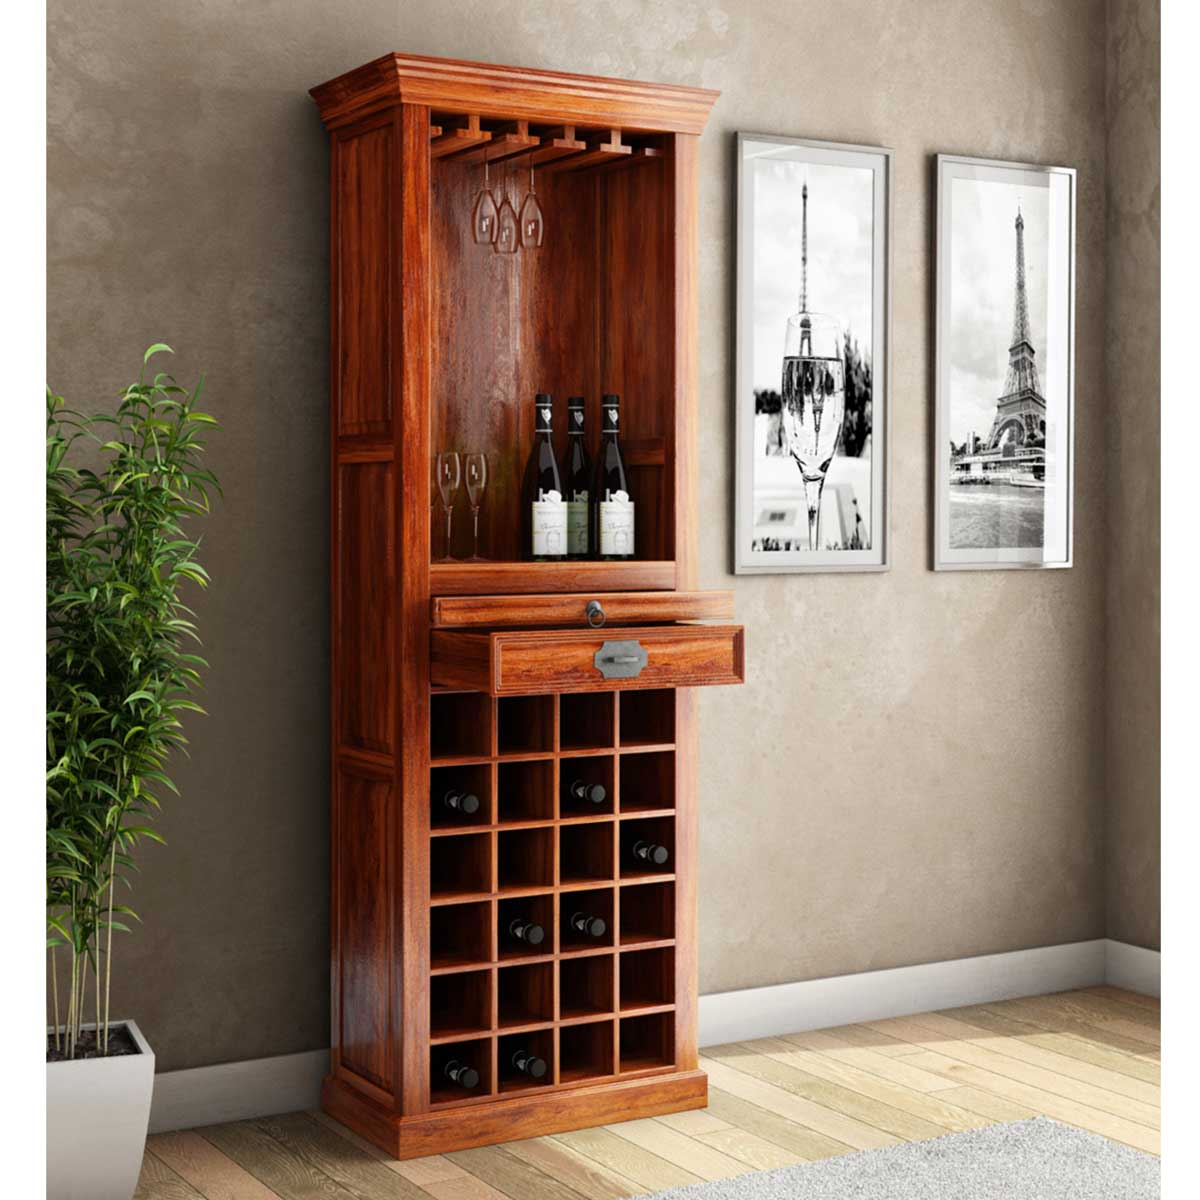 & Lovedale Rustic Mango Wood Tower Bar Cabinet with Wine Storage